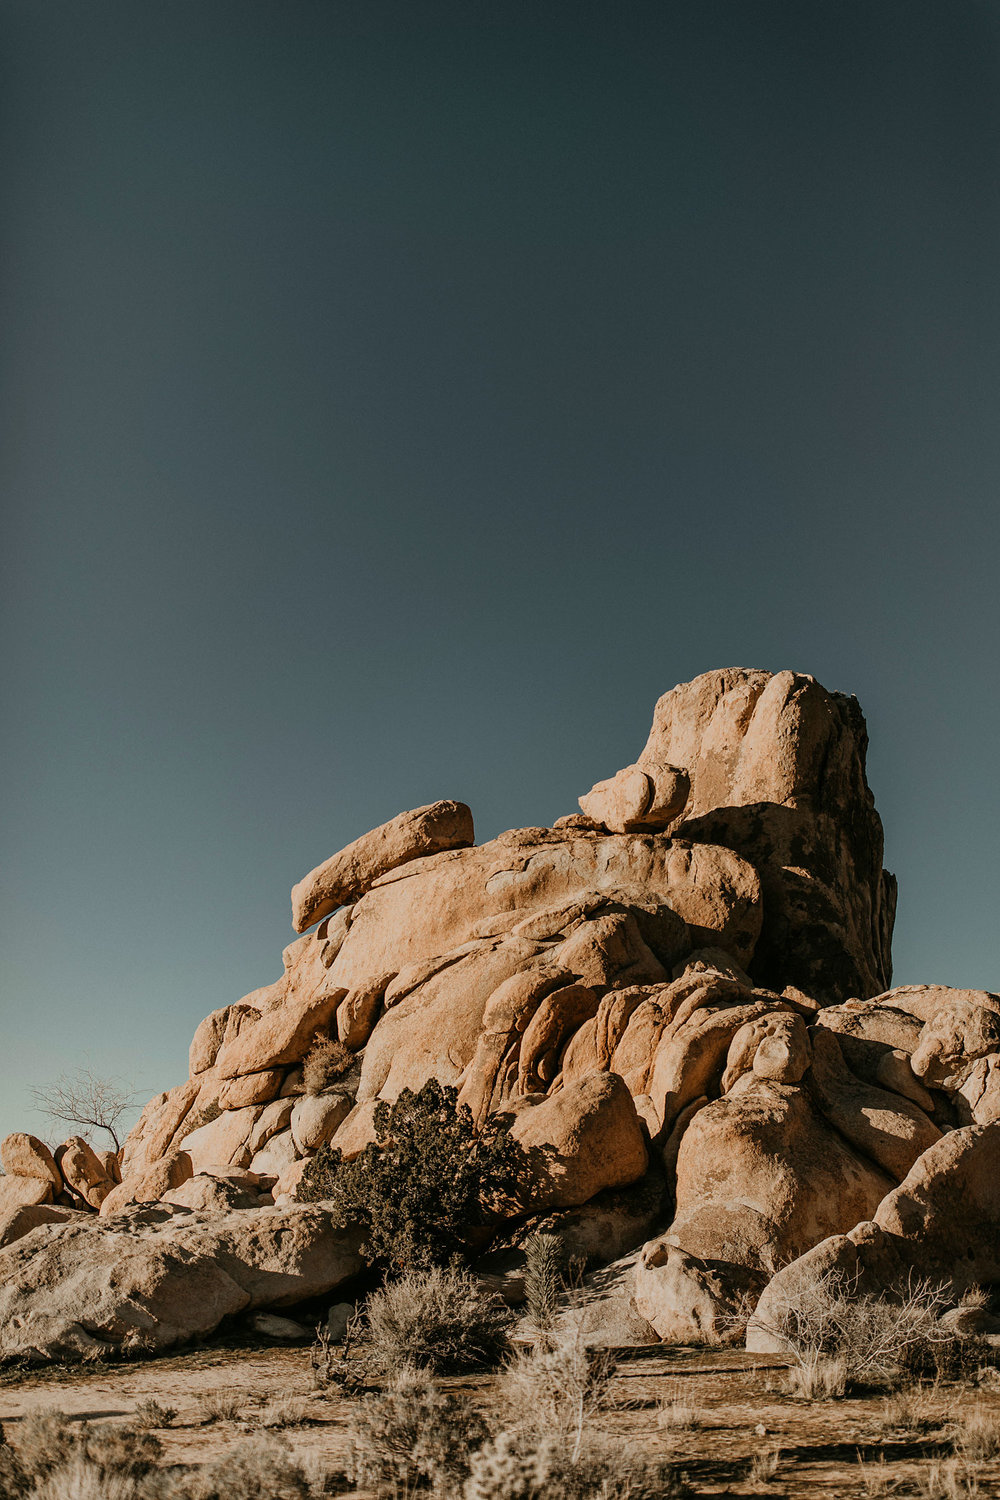 Joshua-Tree-Travel-Photographer-Self-Portraits-02.jpg